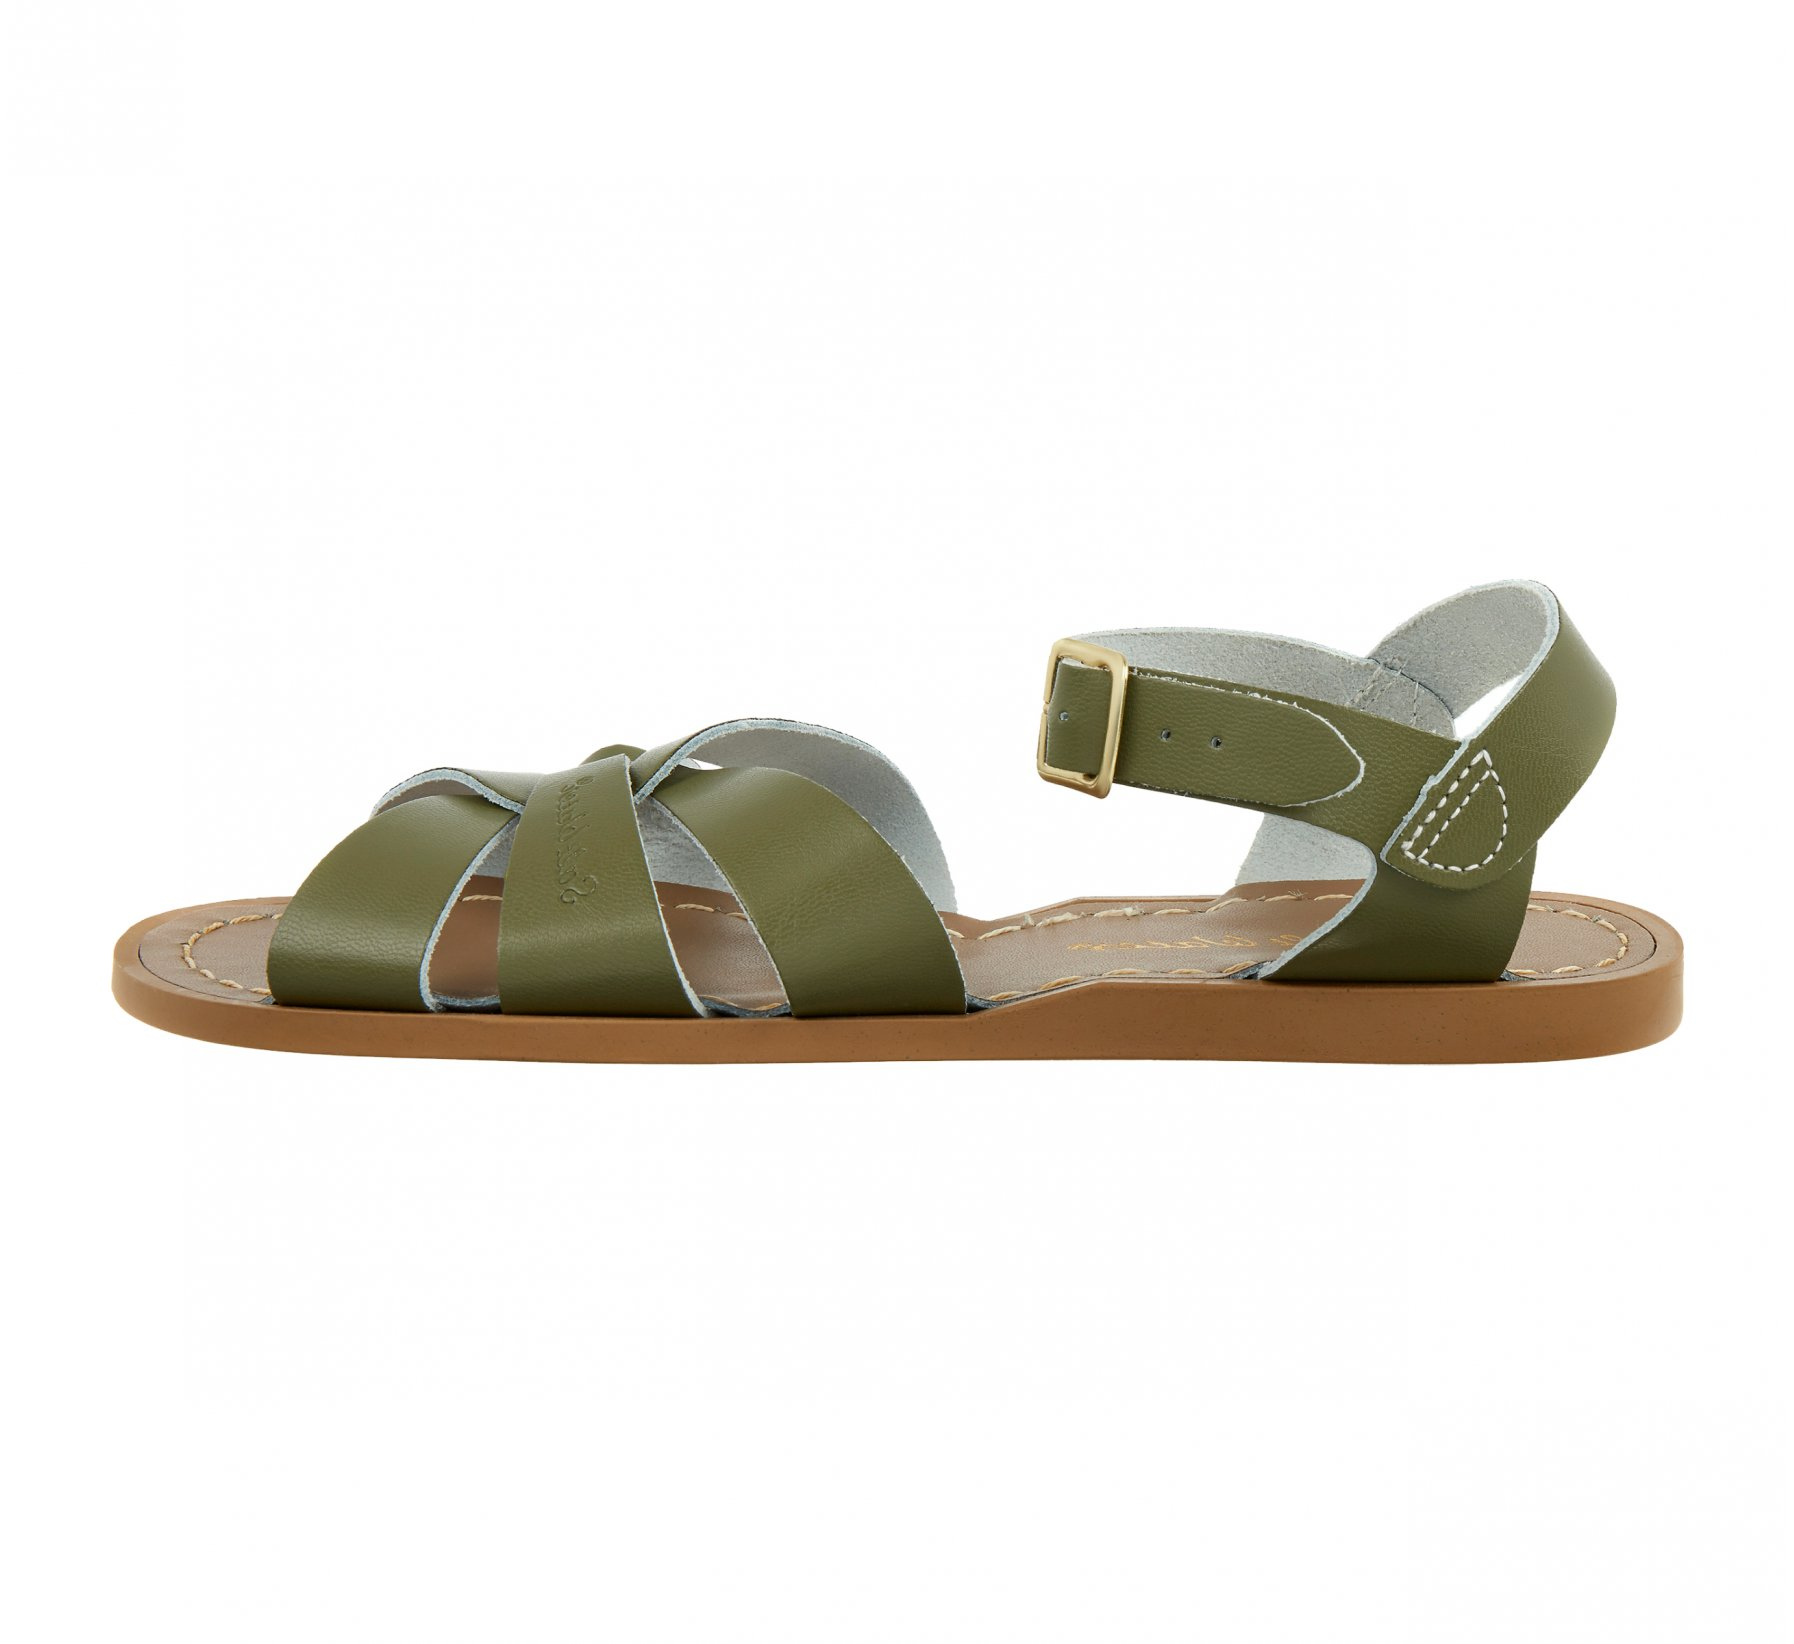 Original Hijau Buah Zaitun - Salt Water Sandals